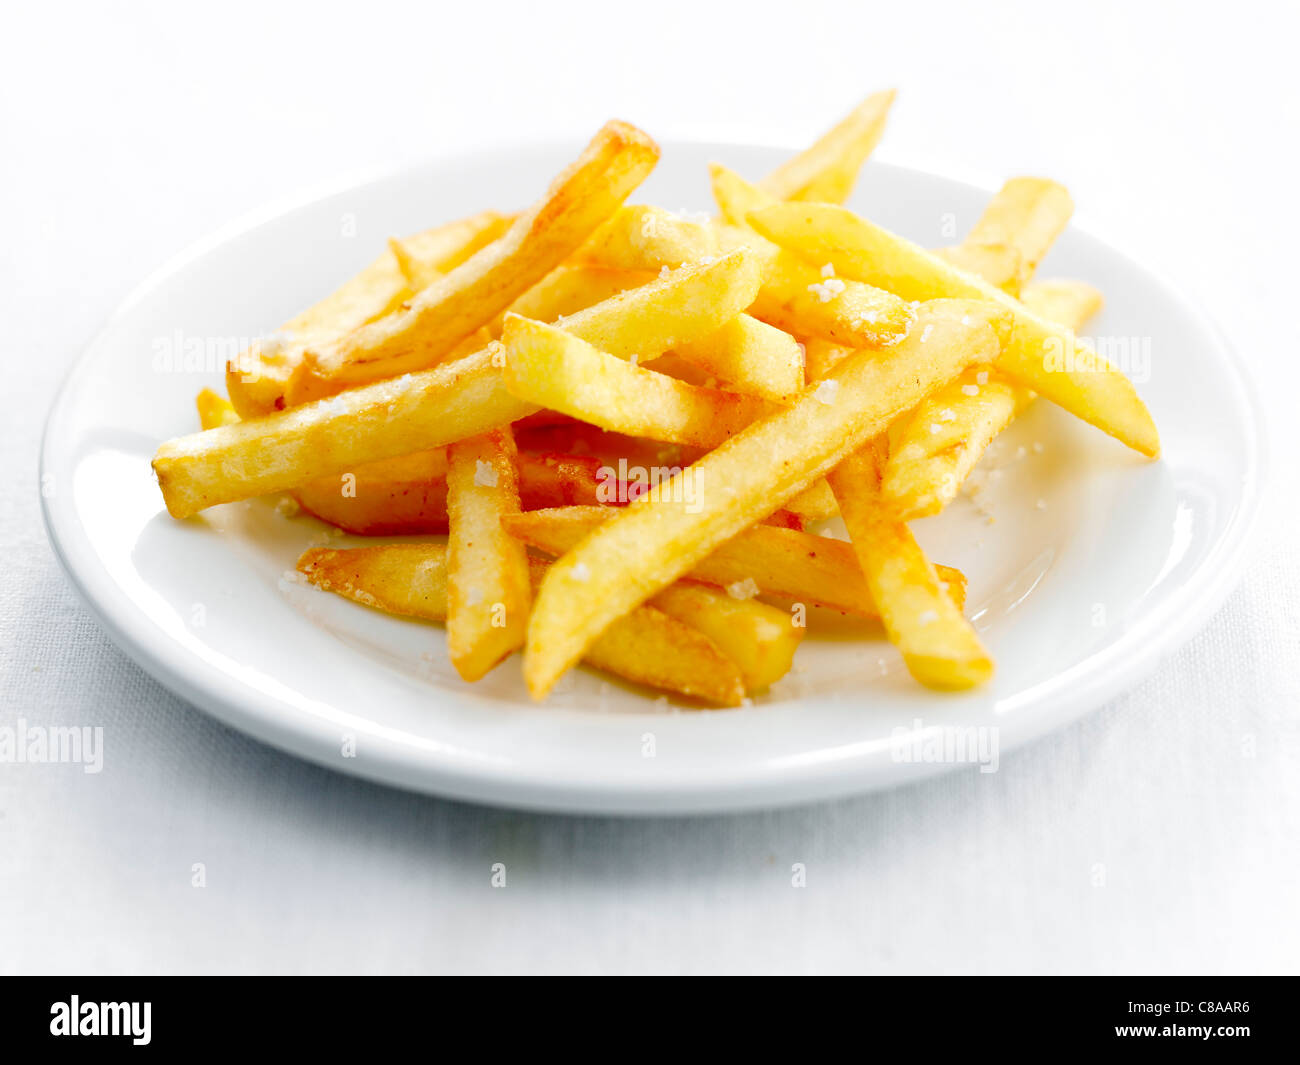 Plate of french fries - Stock Image